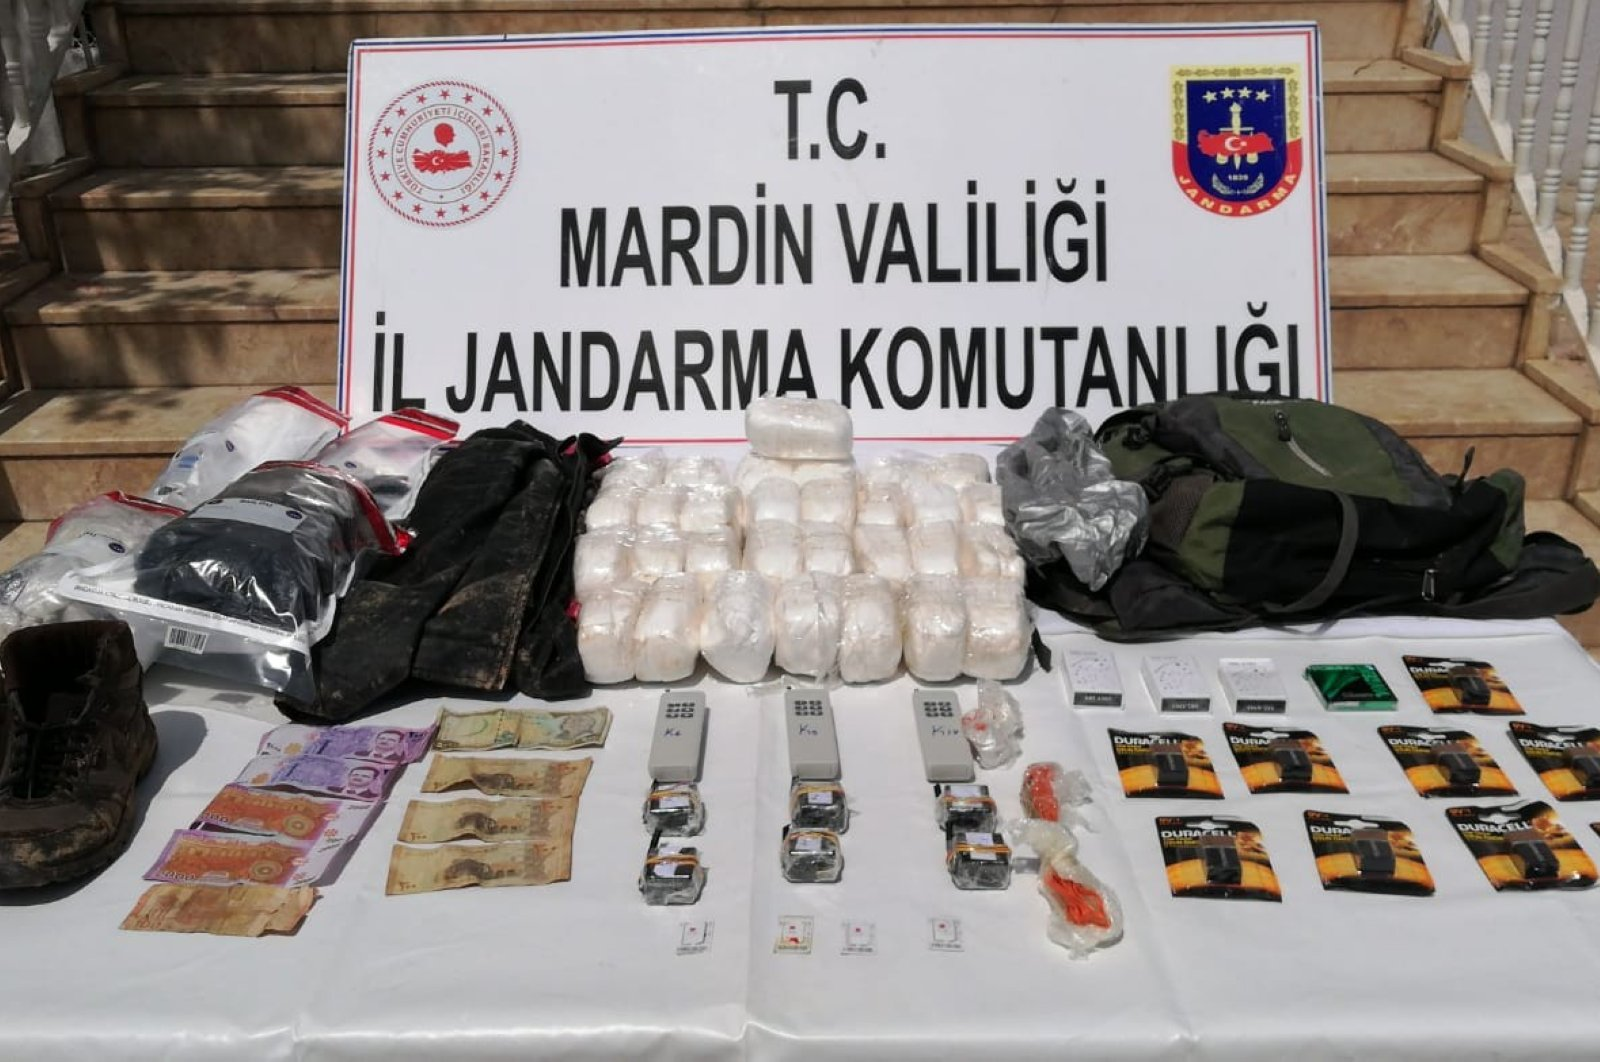 Explosives and other materials belonging to YPG/PKK terrorists confiscated by gendarmerie units in Mardin on Saturday, April 11, 2020 (IHA Photo)